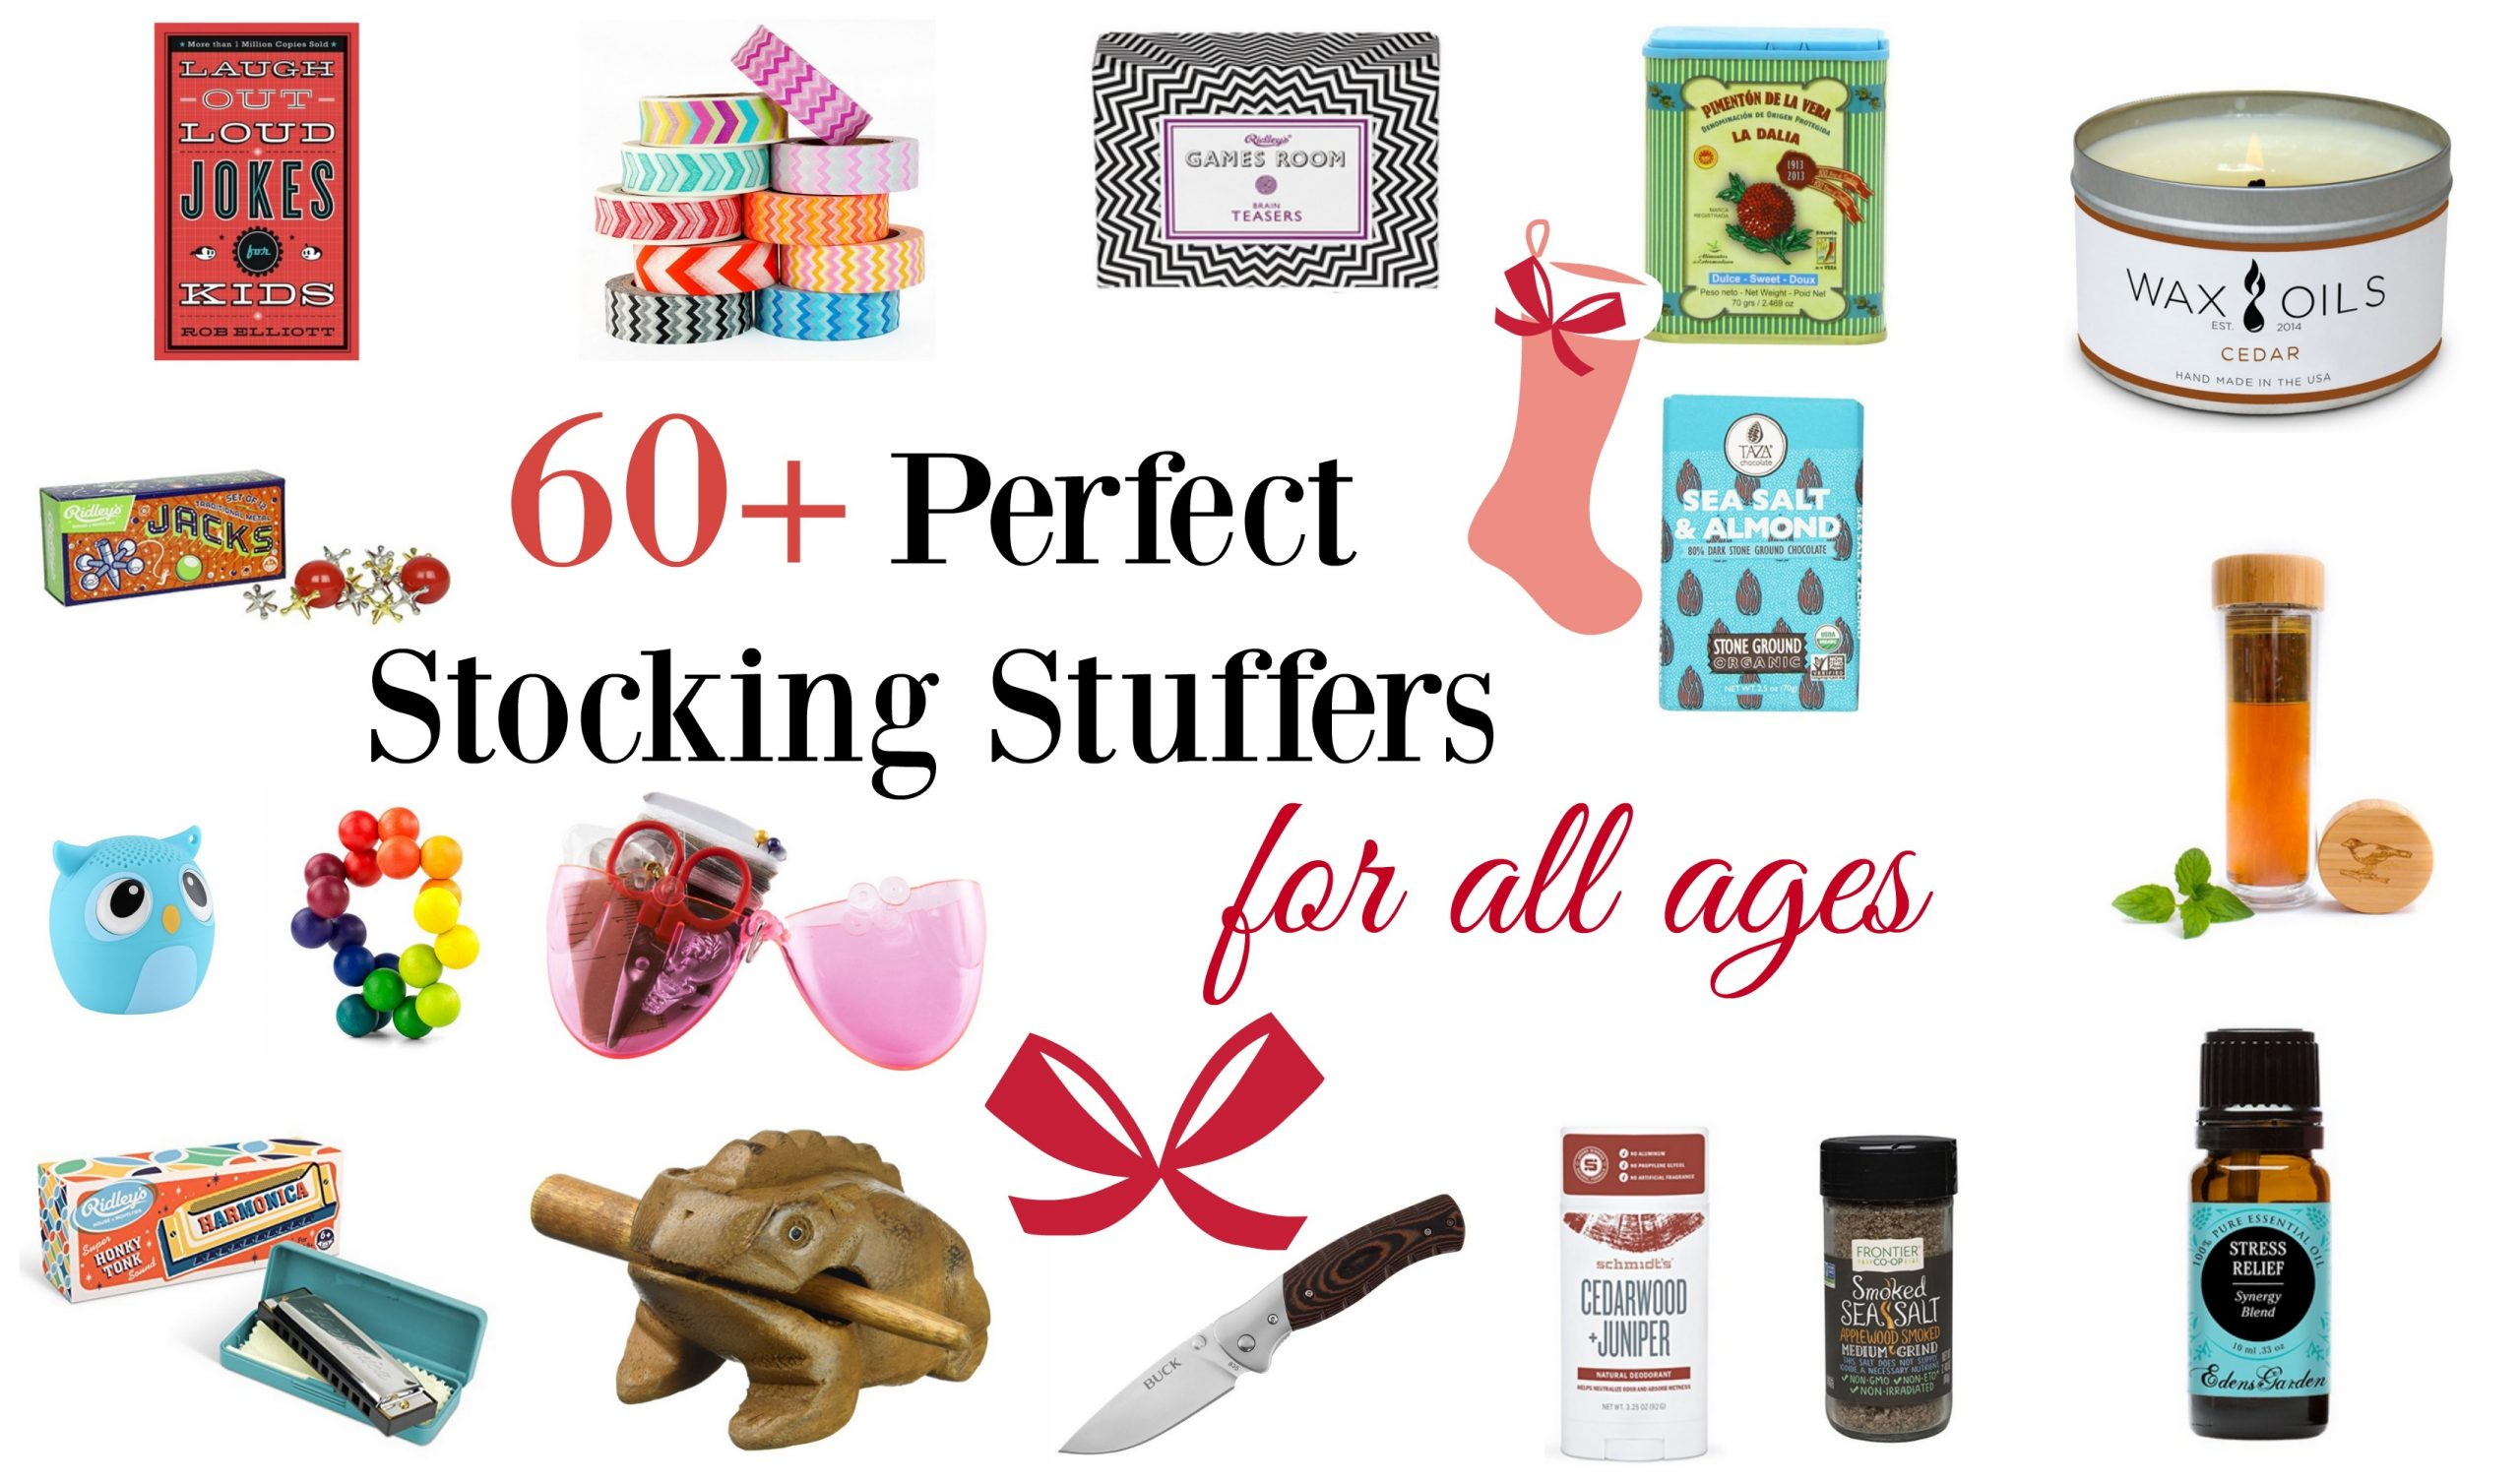 60+ Perfect Stocking Stuffer Ideas